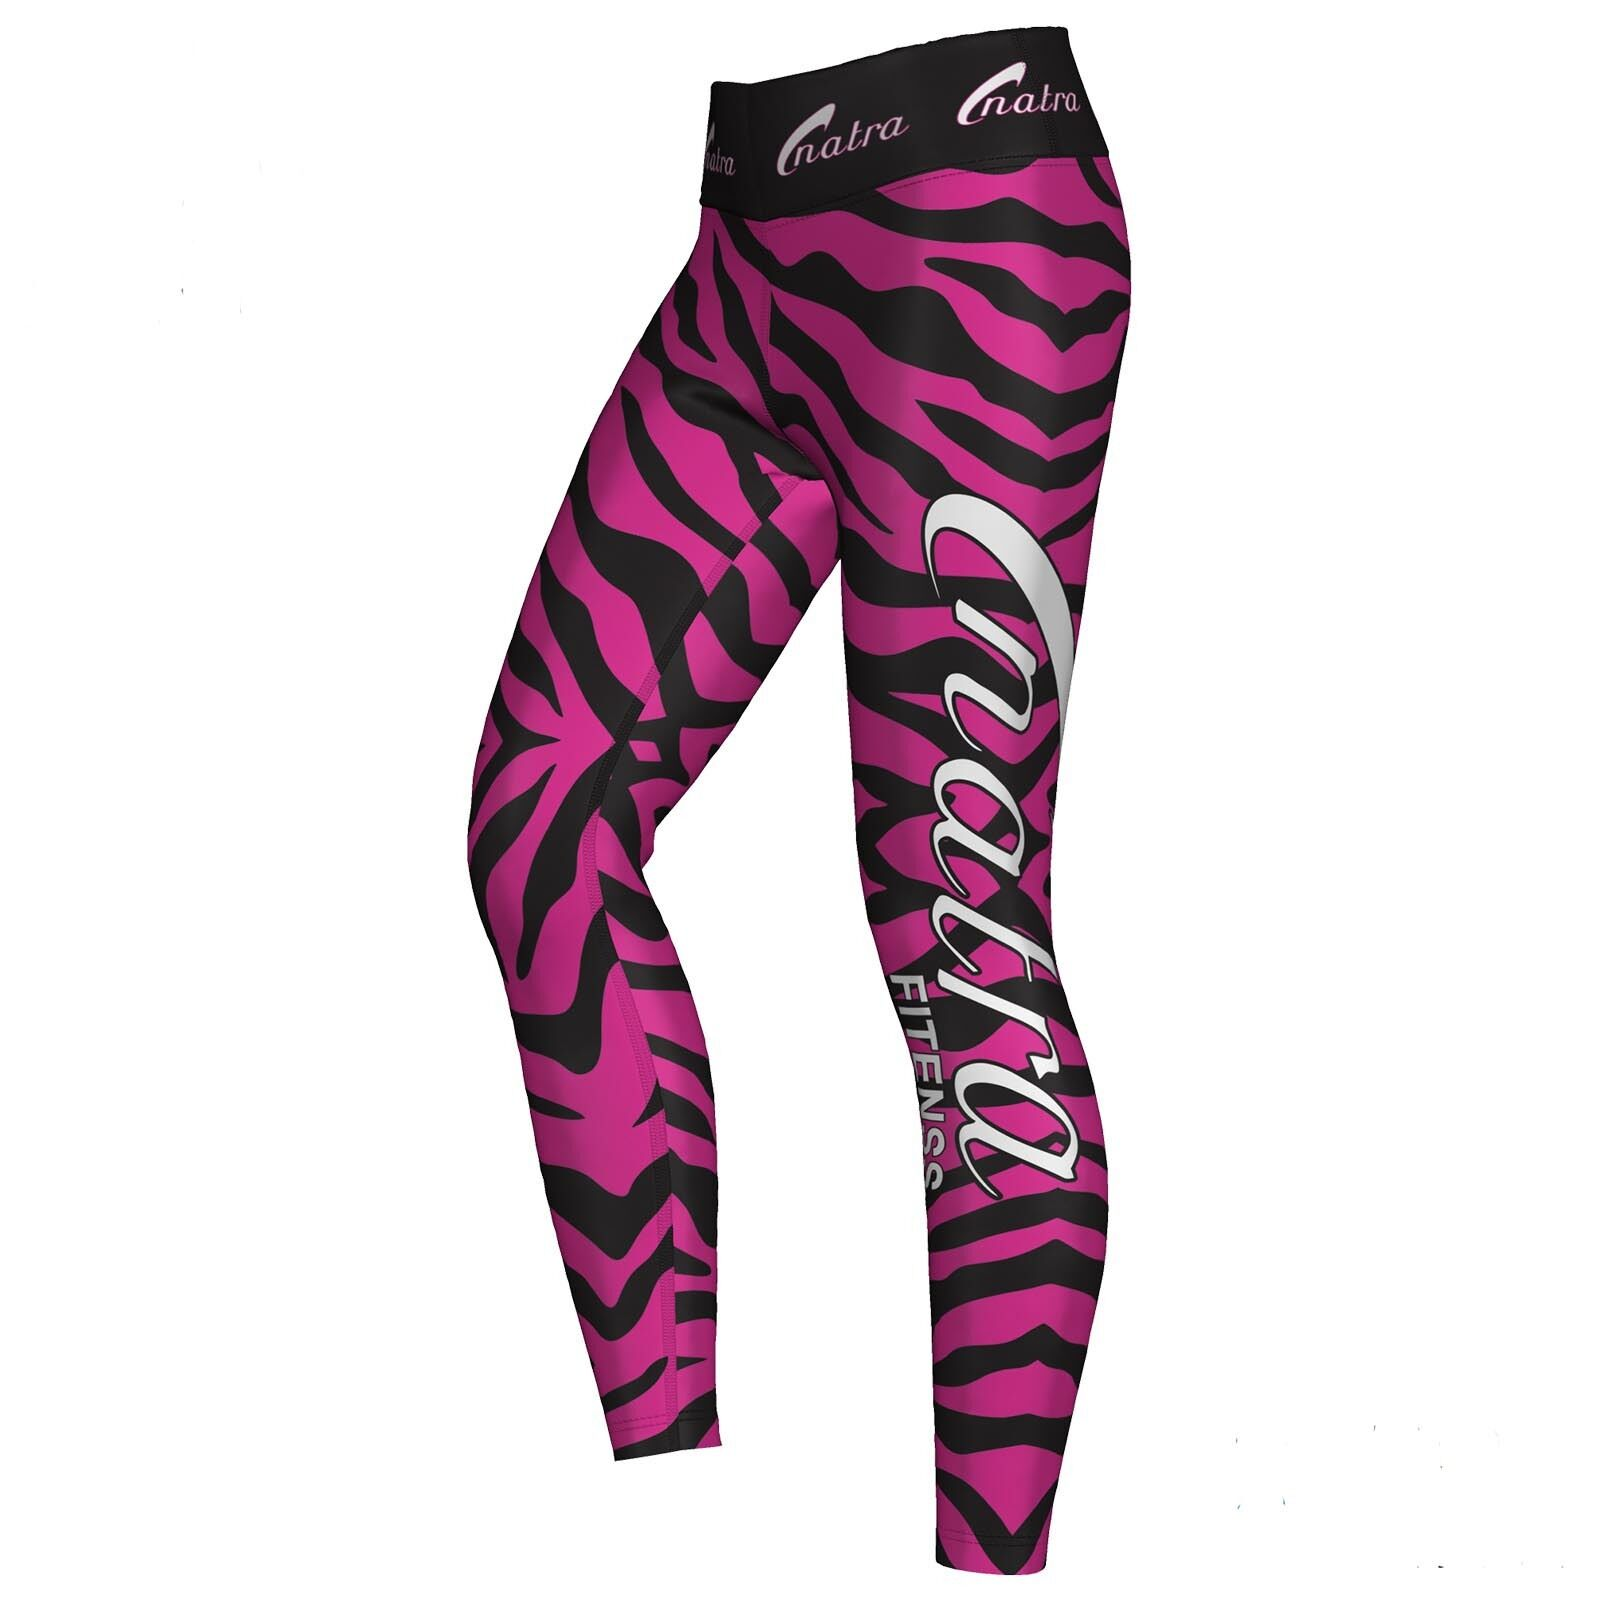 Natra Fitness Sublimation Leggings Sport Training Trousers Lycra Breathable Pink